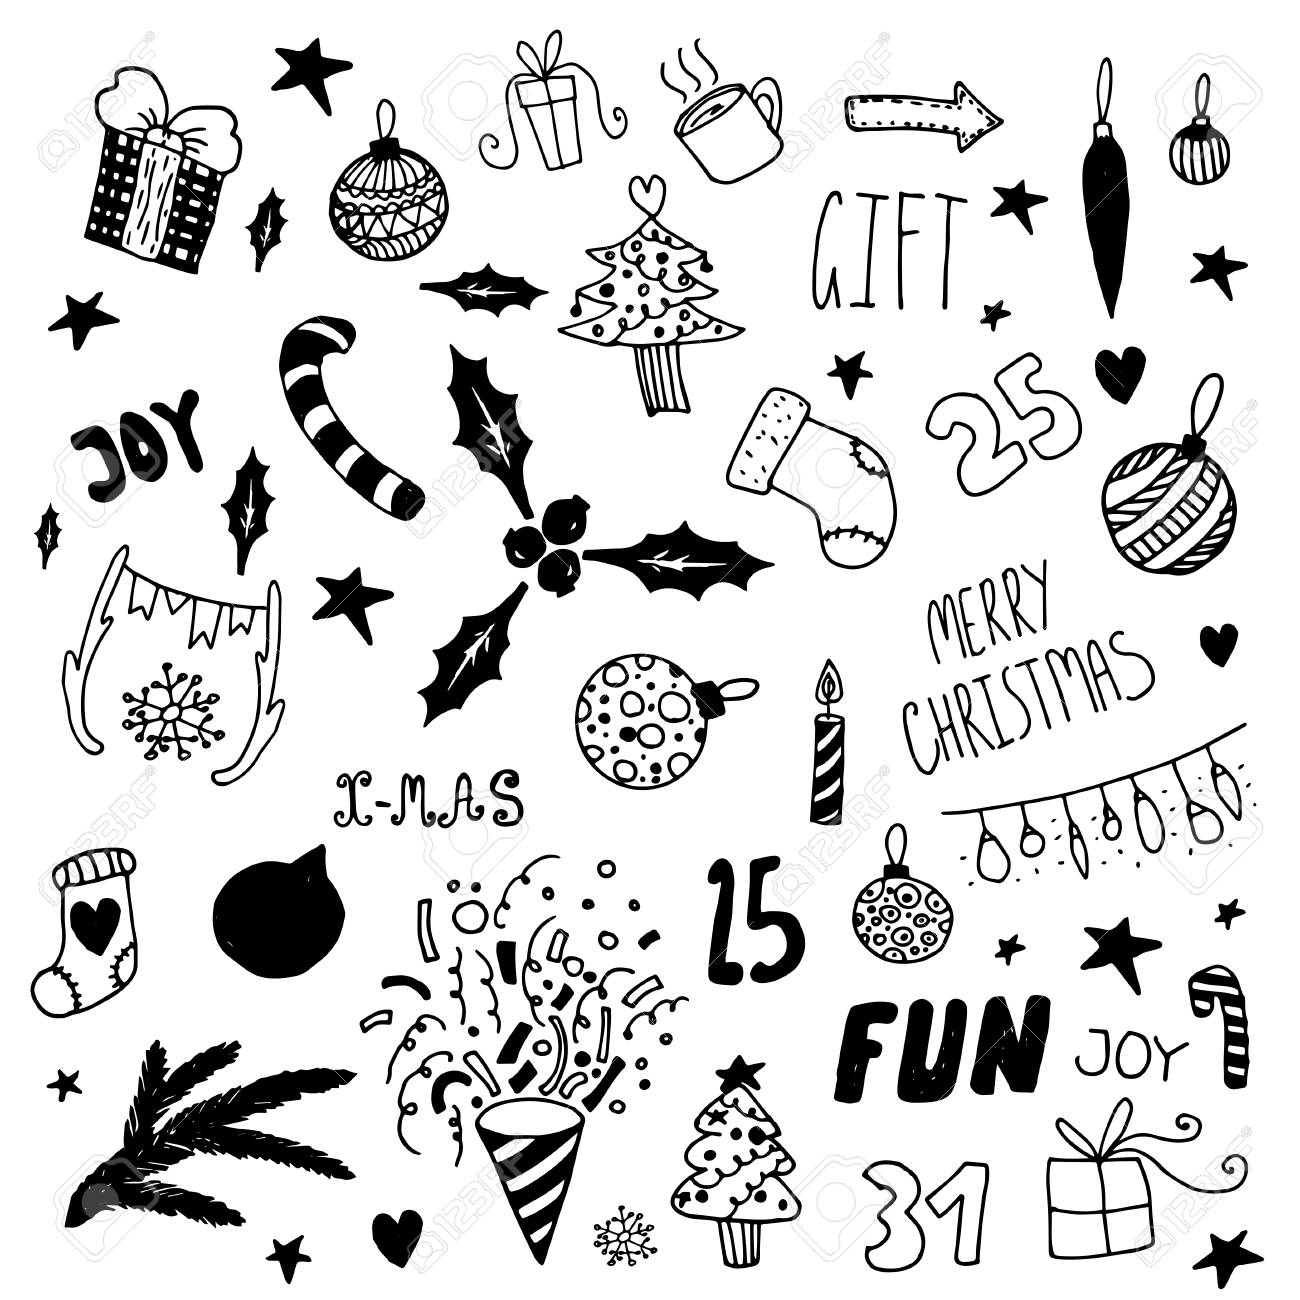 Happy New Year Doodle 15